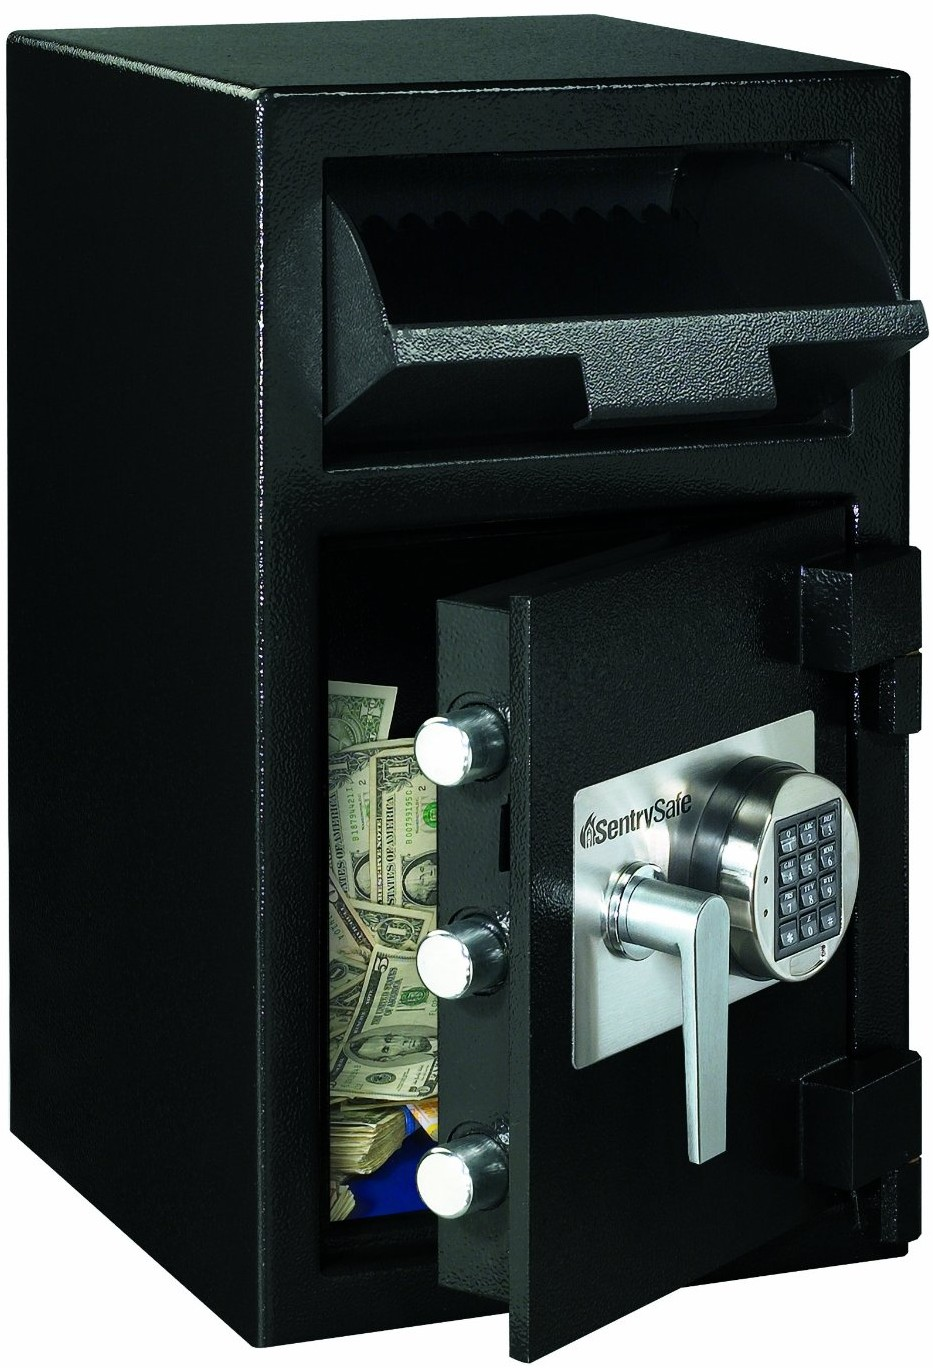 how to open a sentry safe with digital keypad